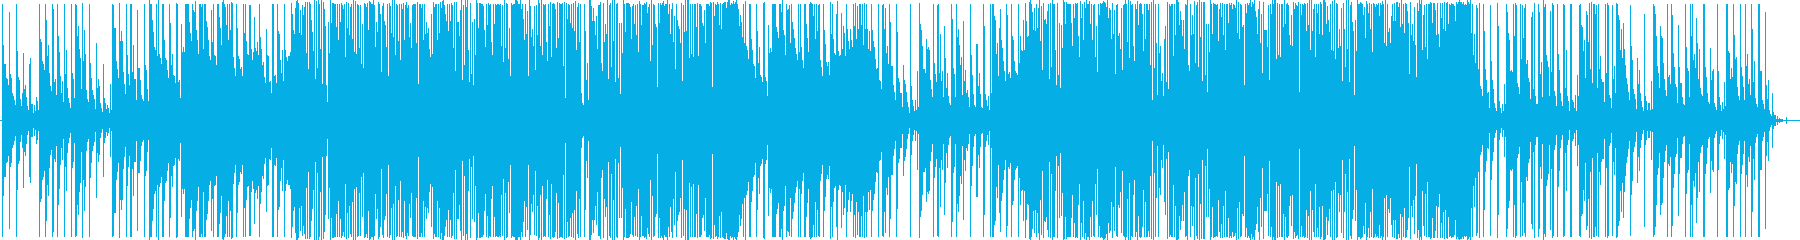 Trap beat using voice material's reproduced waveform